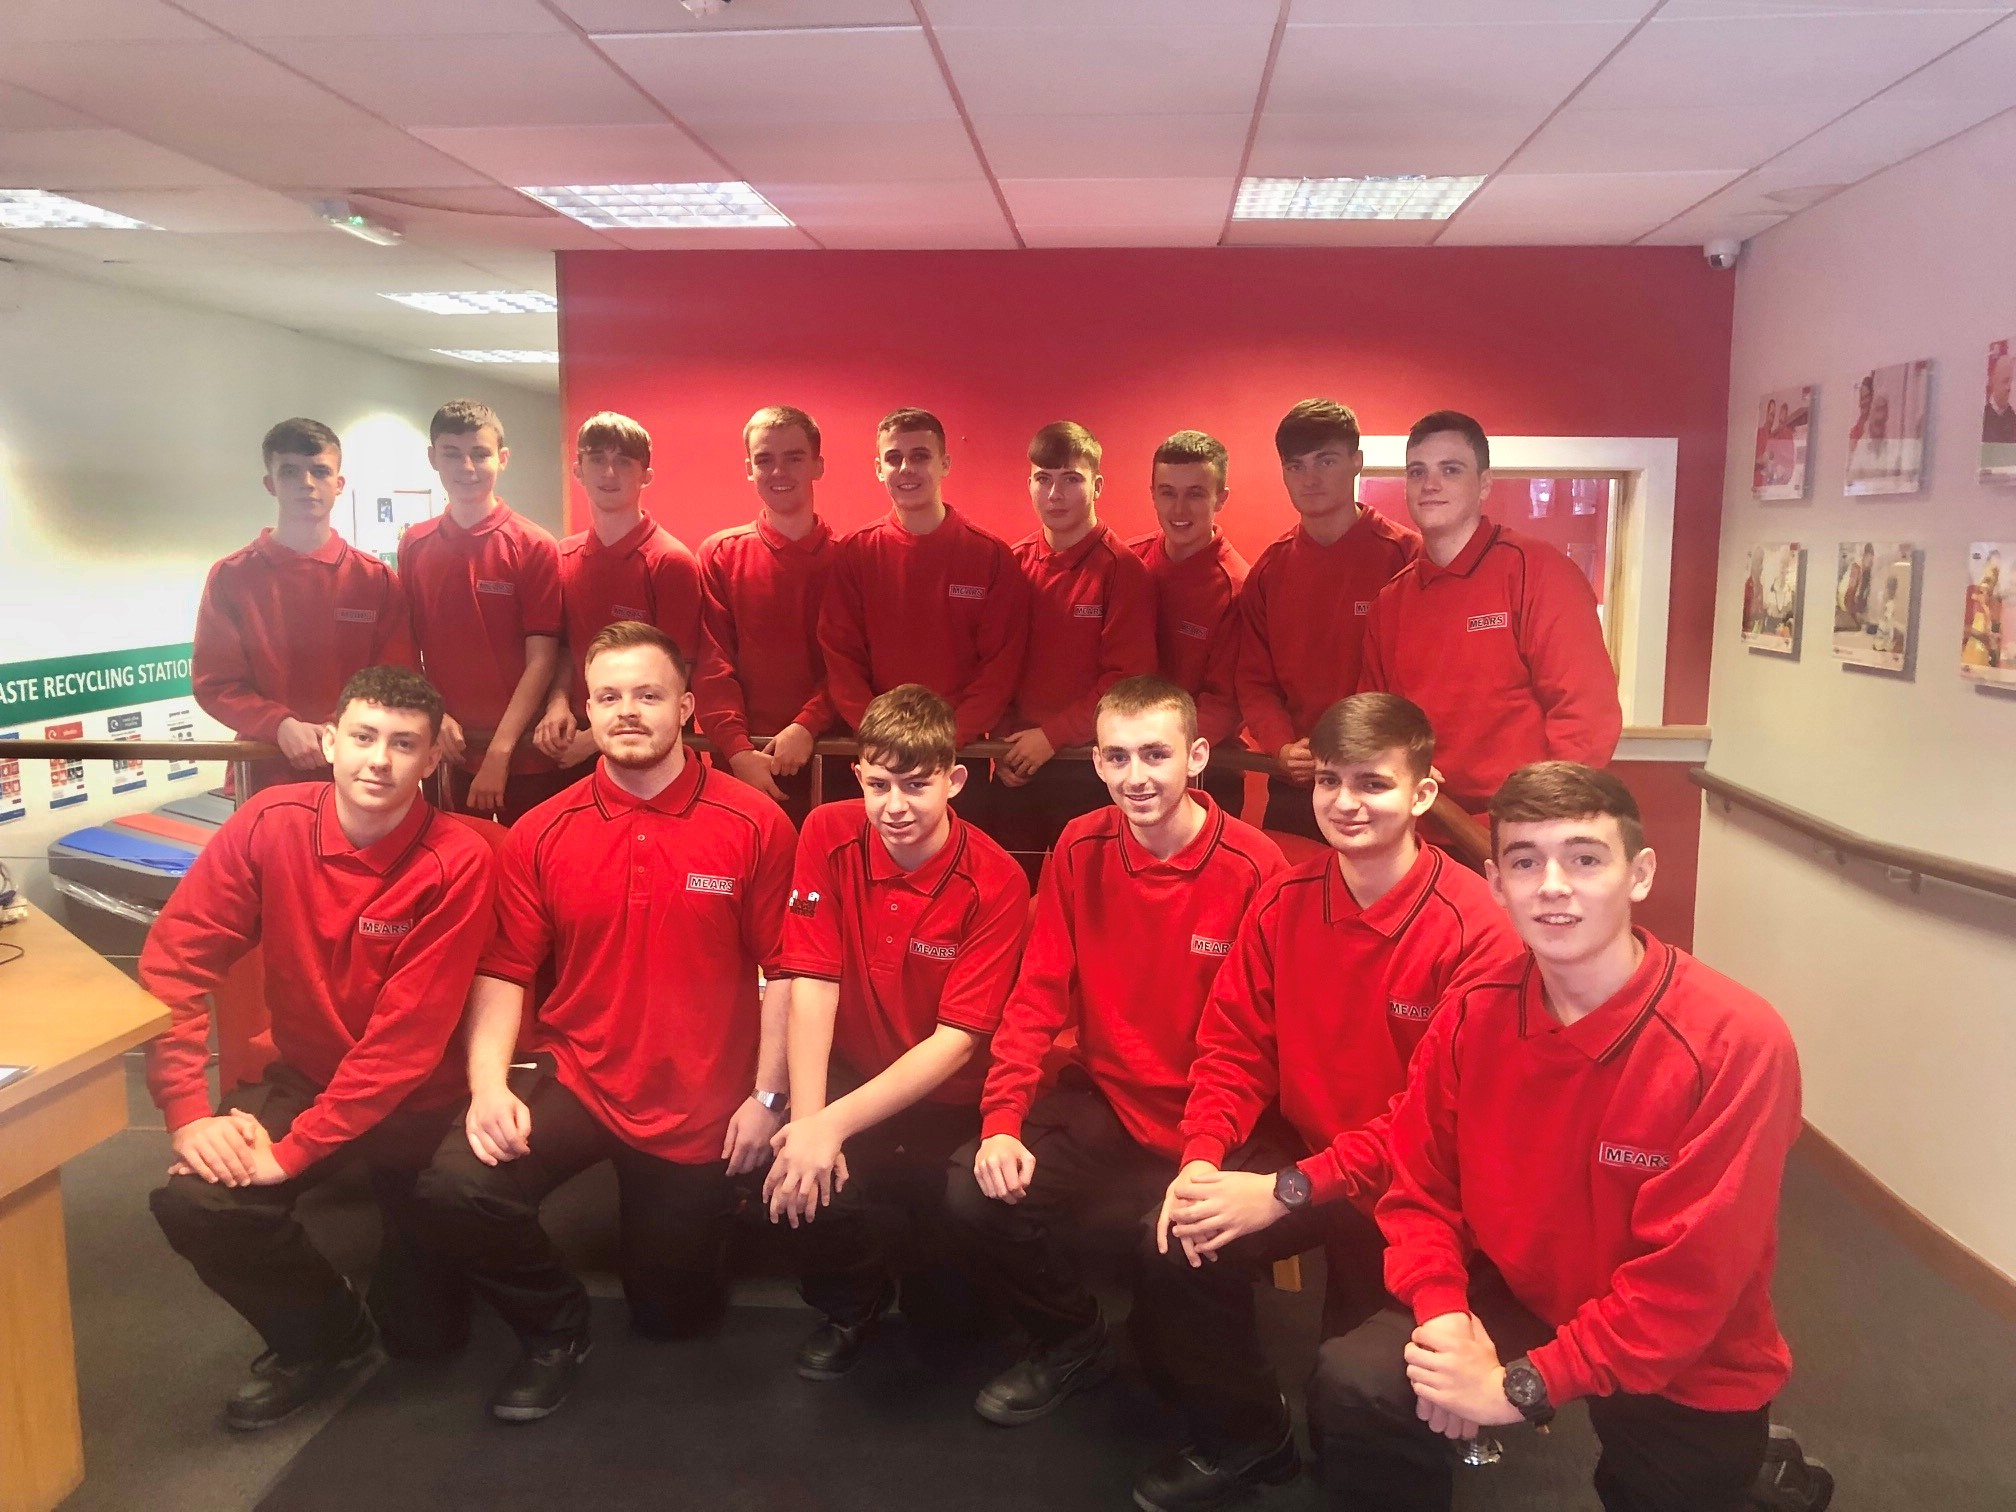 Mears to take on 20 apprentices in North Lanarkshire